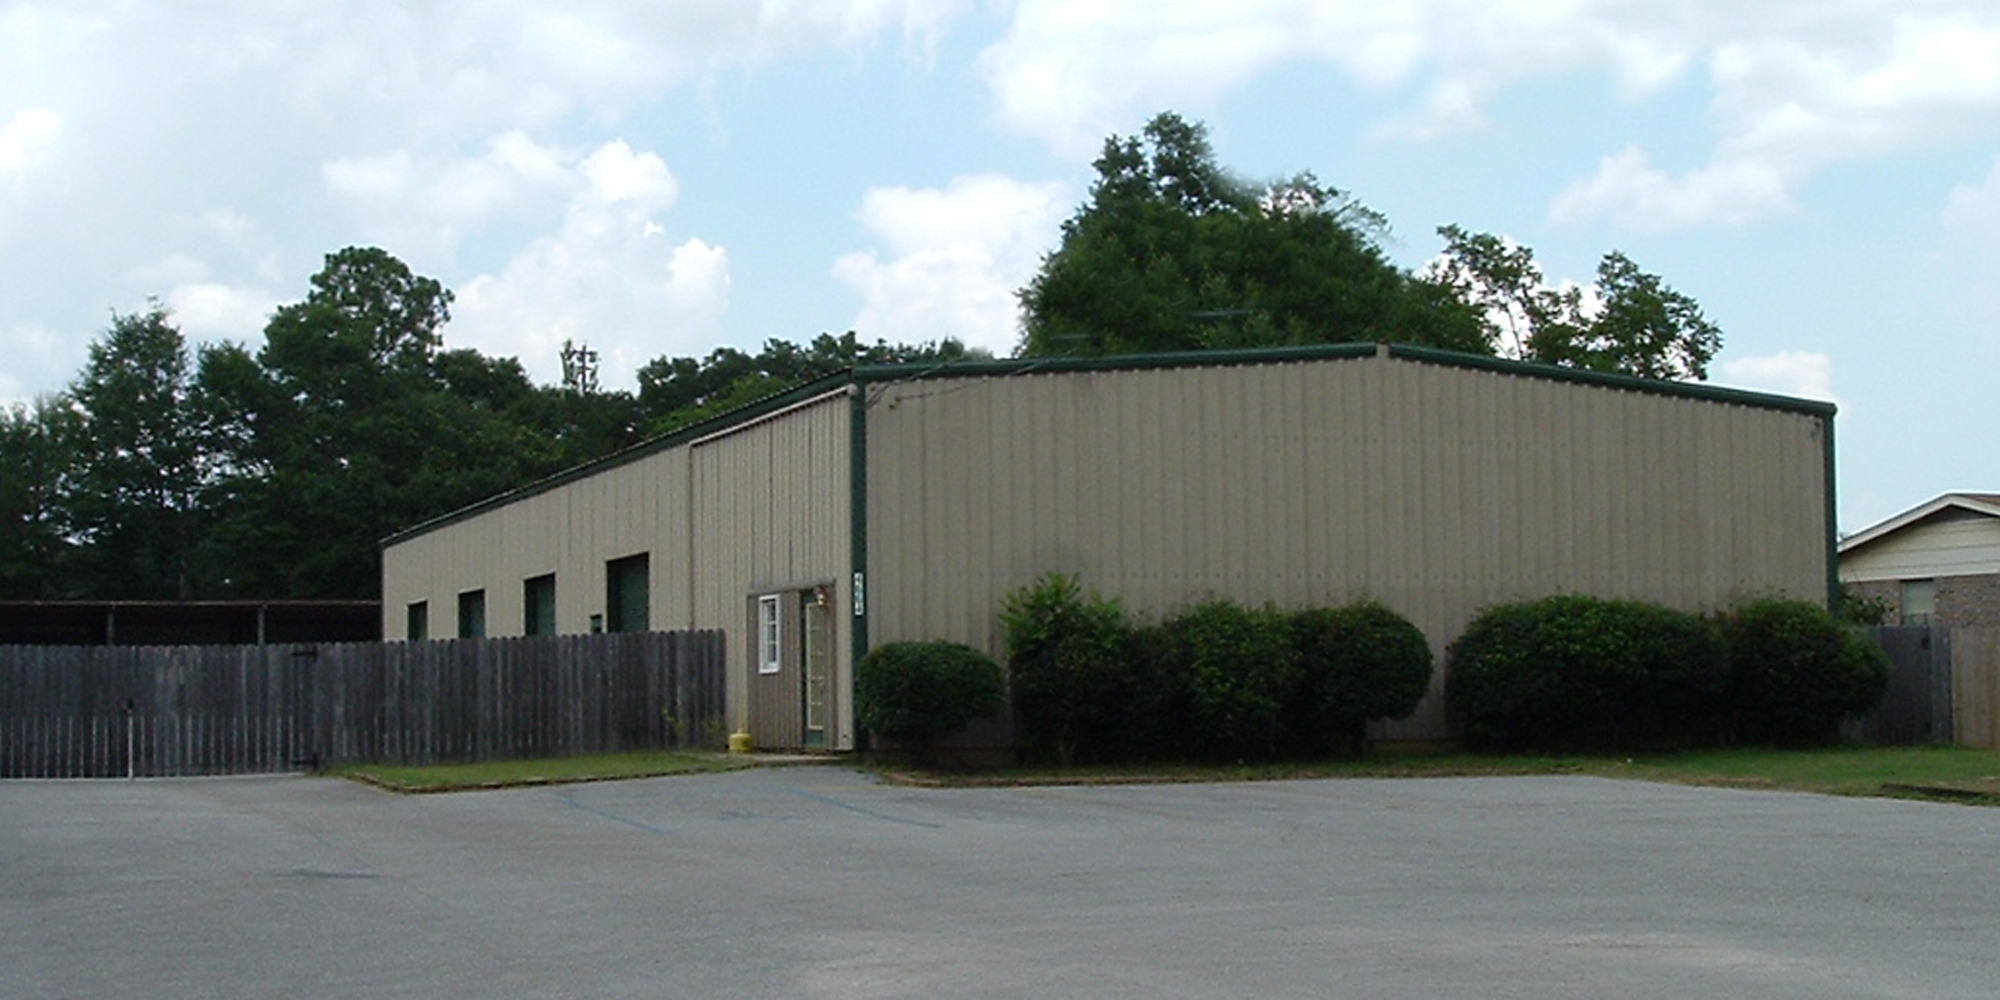 4664 Halls Mill Road - WAREHOUSEA 6,250± square foot office/warehouse located on the north side of Halls Mill Road, between Azalea Road and Demotropolis Road. The building is 100% occupied.Tenant: Delta Stone